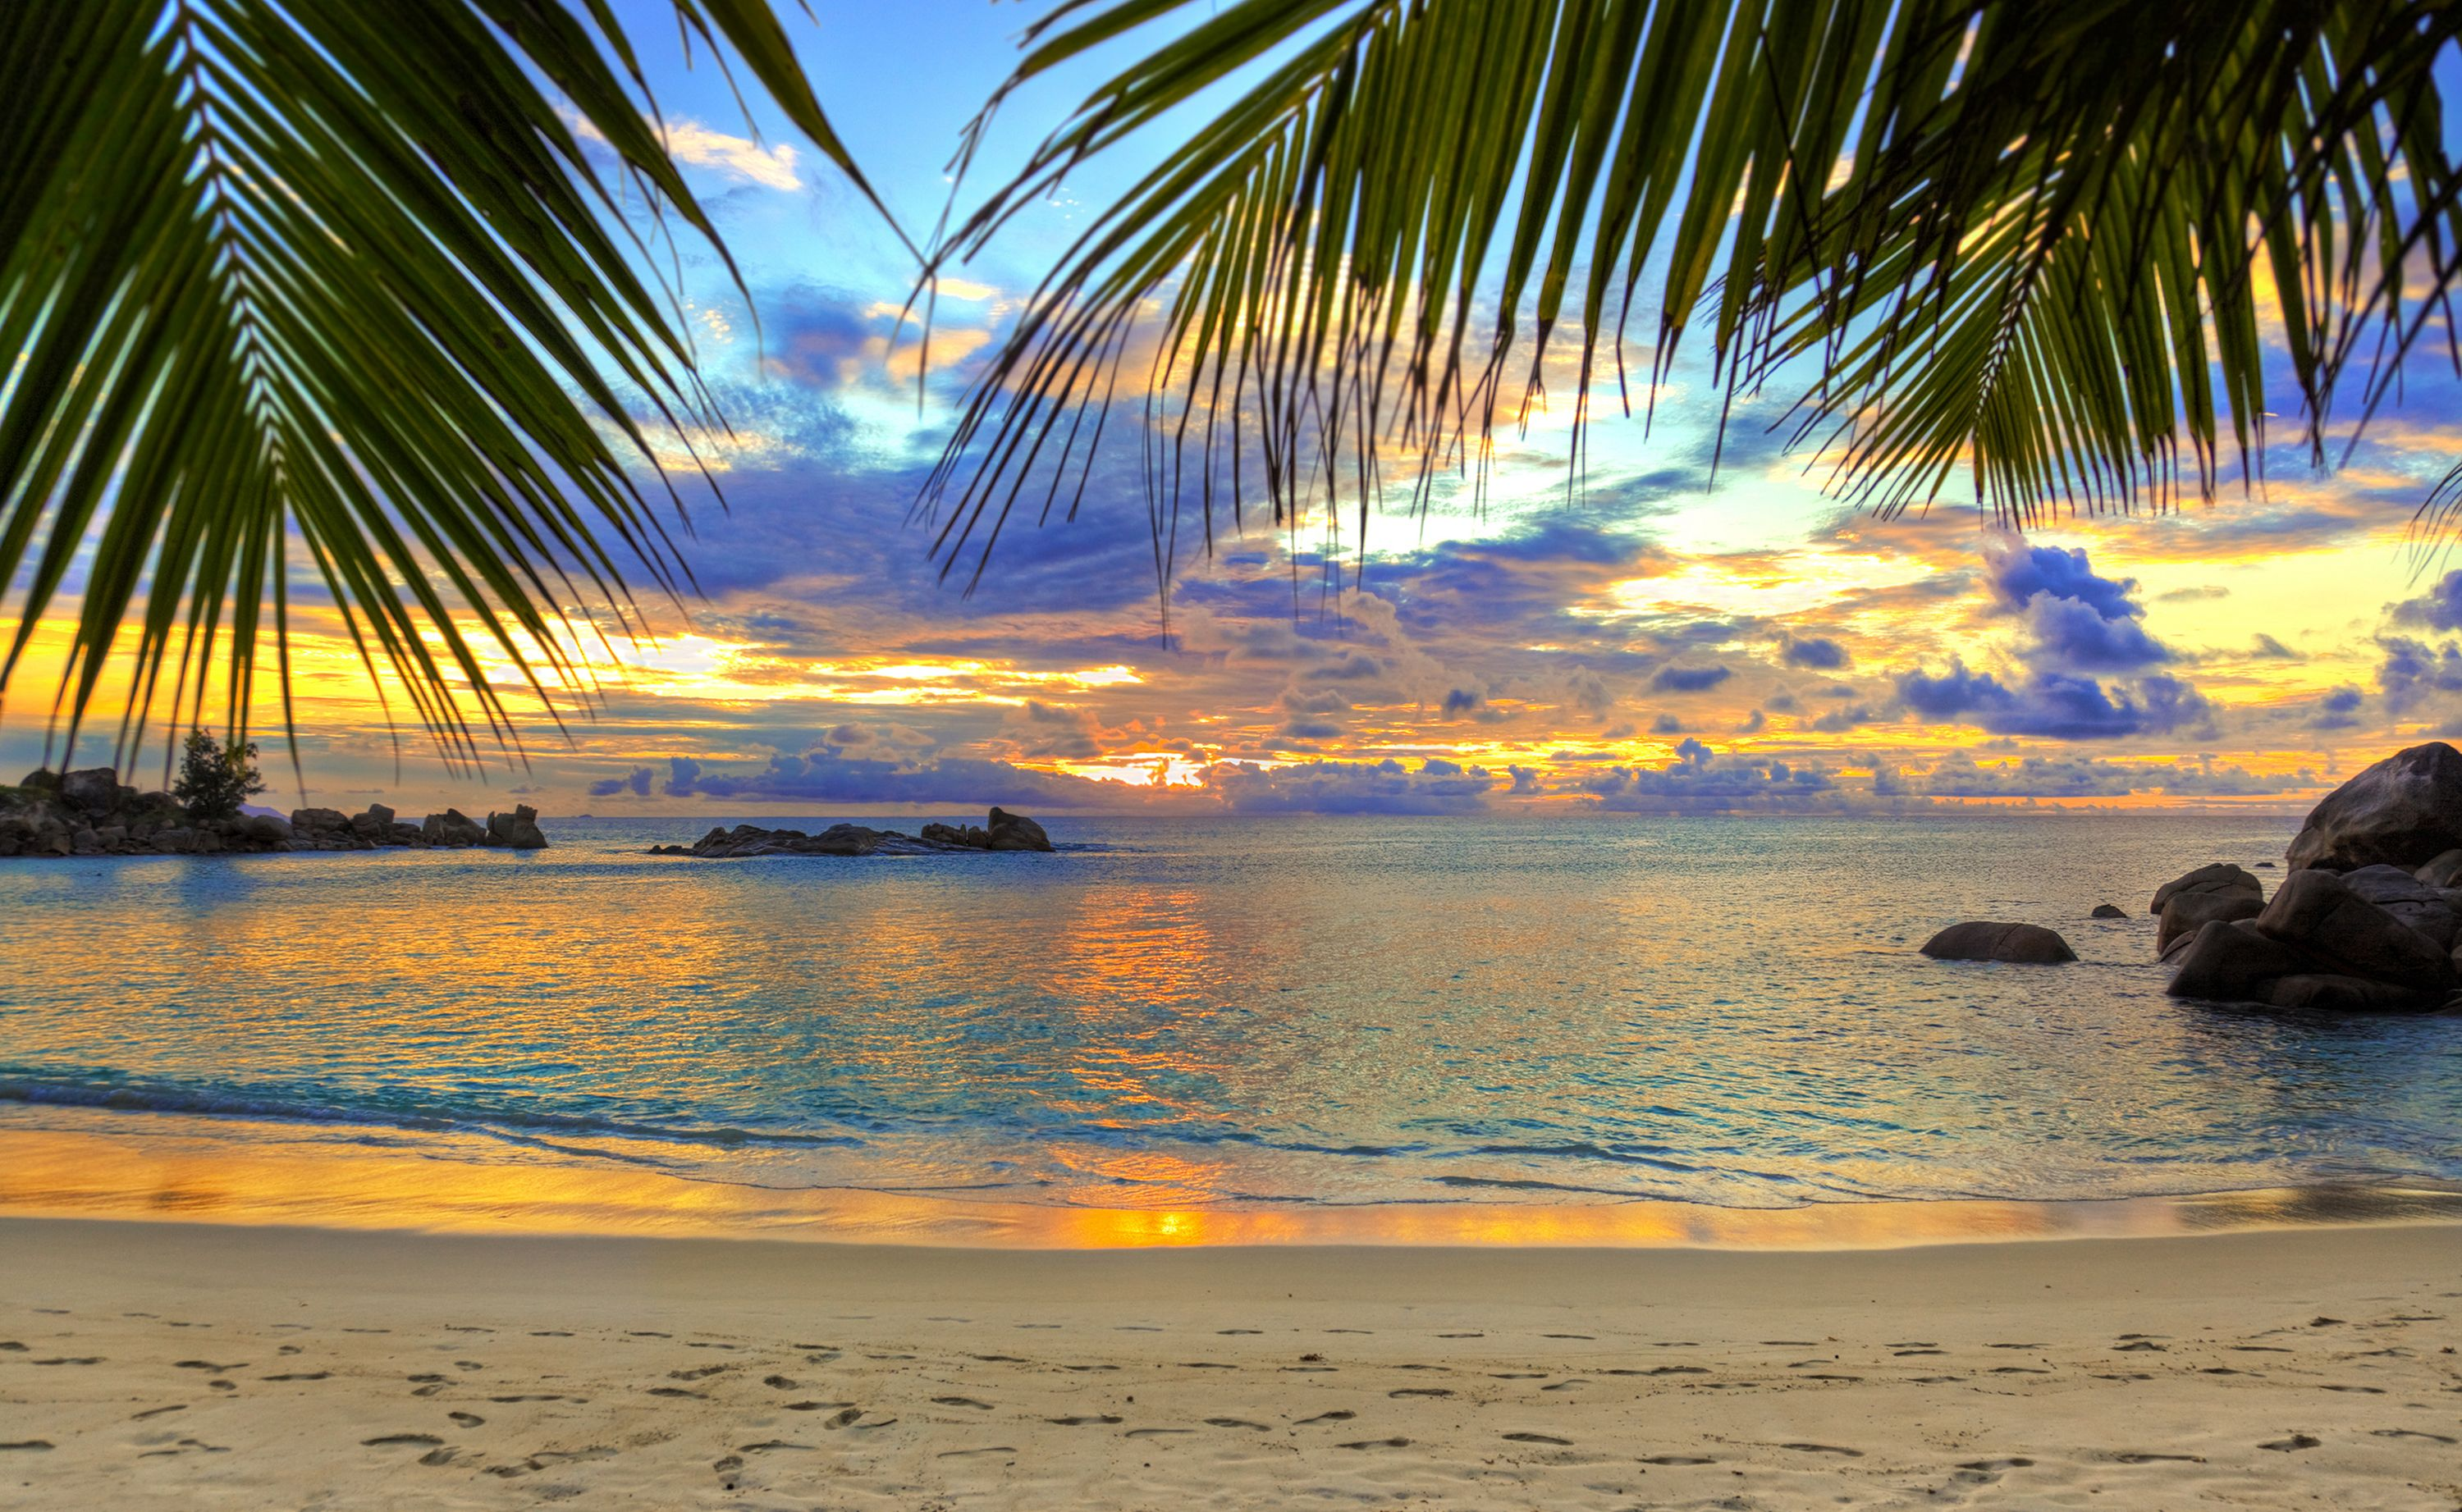 50 Amazing Beach Wallpapers Free To Download Beautiful Beaches Beach Wallpaper Dream Beach